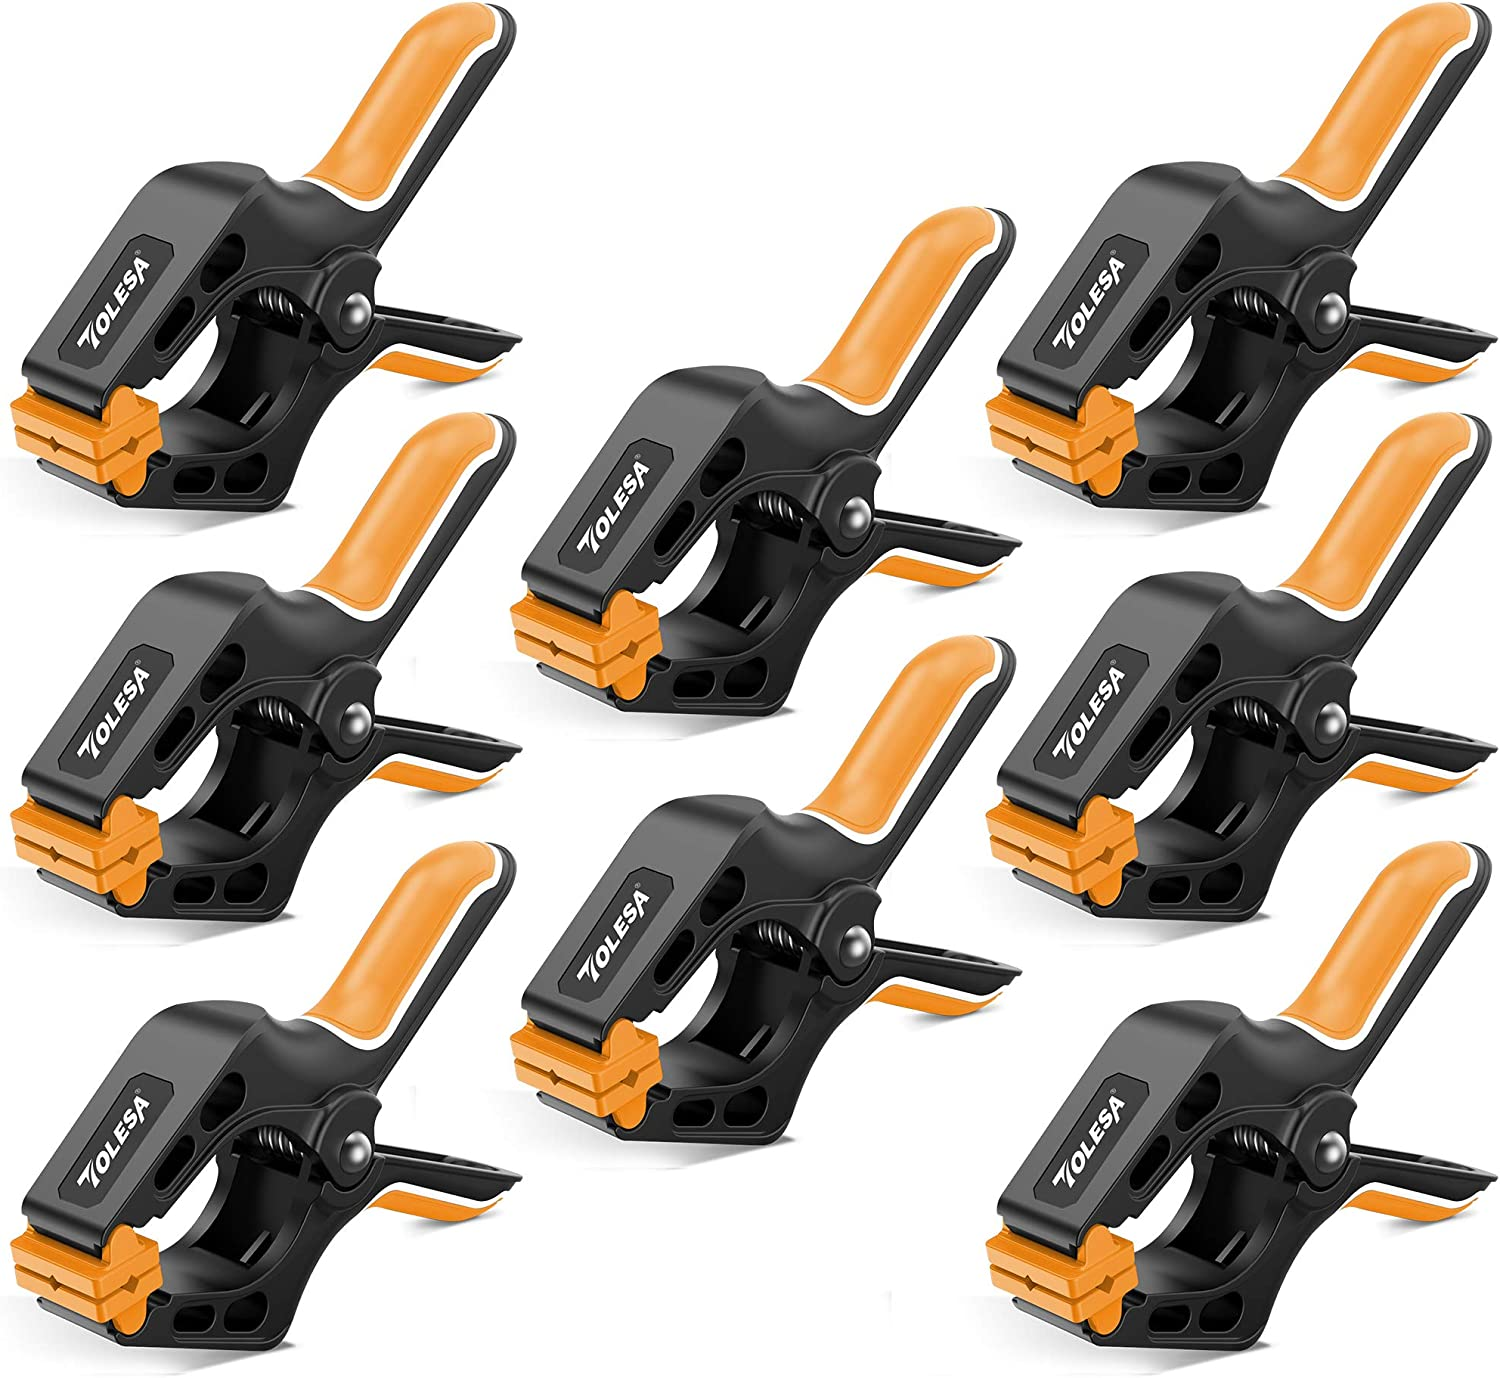 TOLESA 4-Inch Spring Clamps Powerful Force 8-Piece Nylon Clamp w